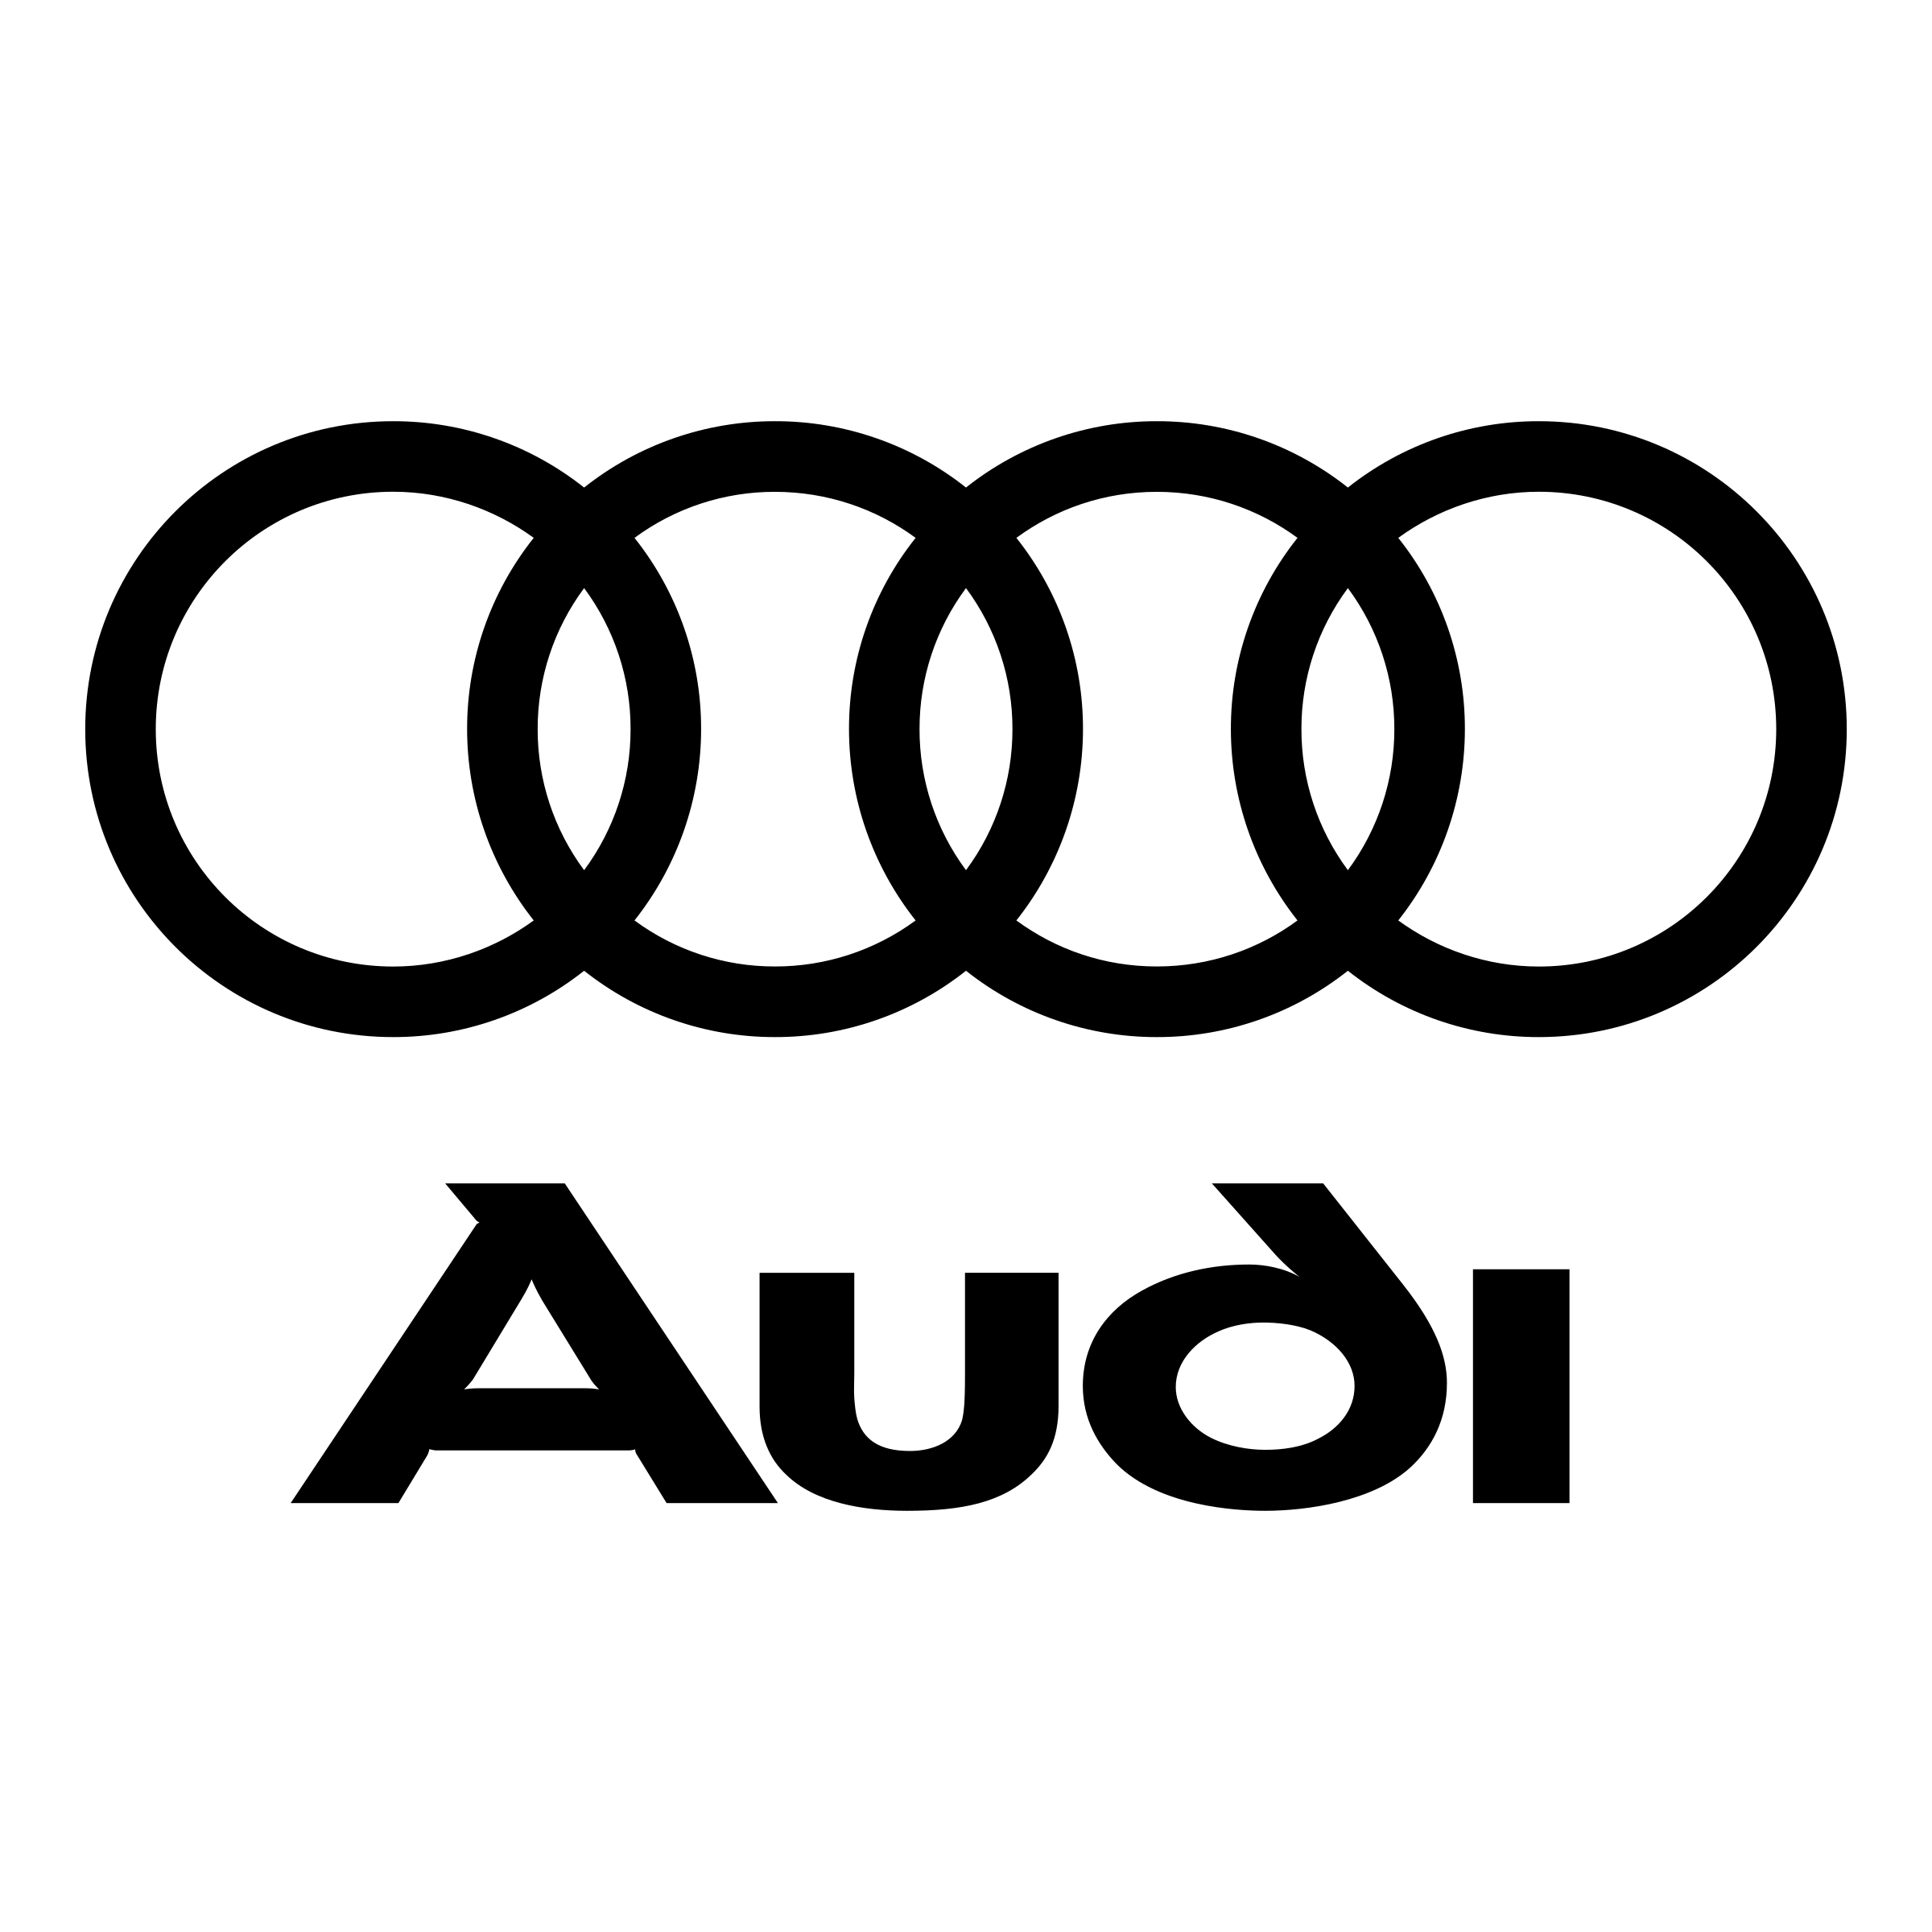 Audi Logo - Audi Logo PNG Transparent & SVG Vector - Freebie Supply